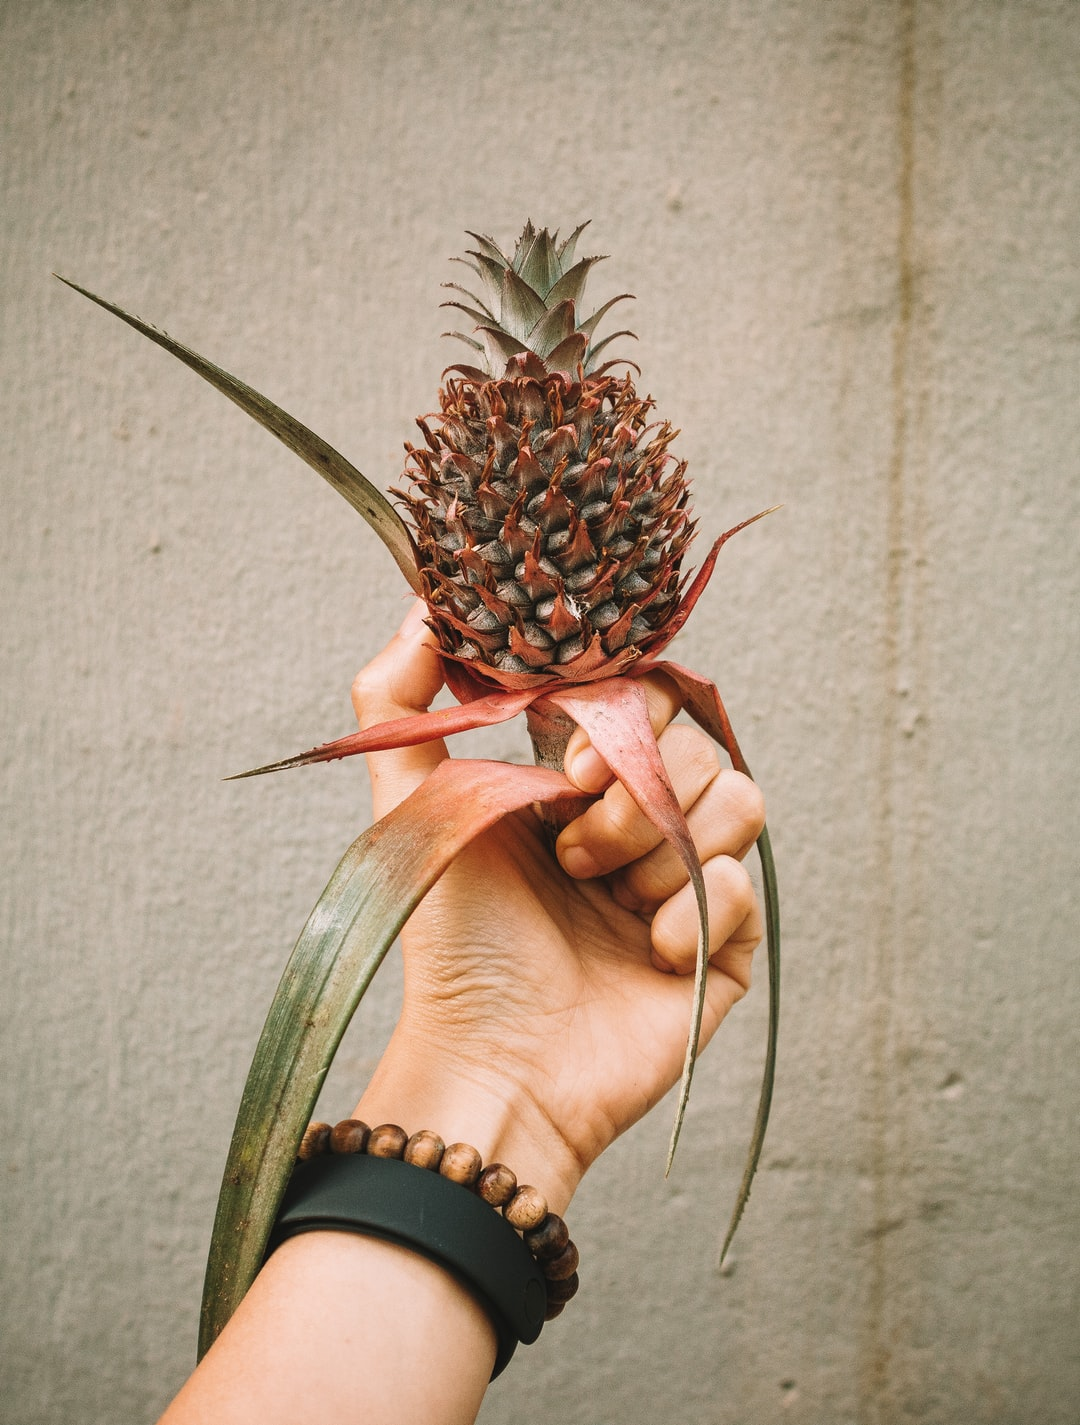 I have a hand, I have a pineapple,...bum Pineapple hand